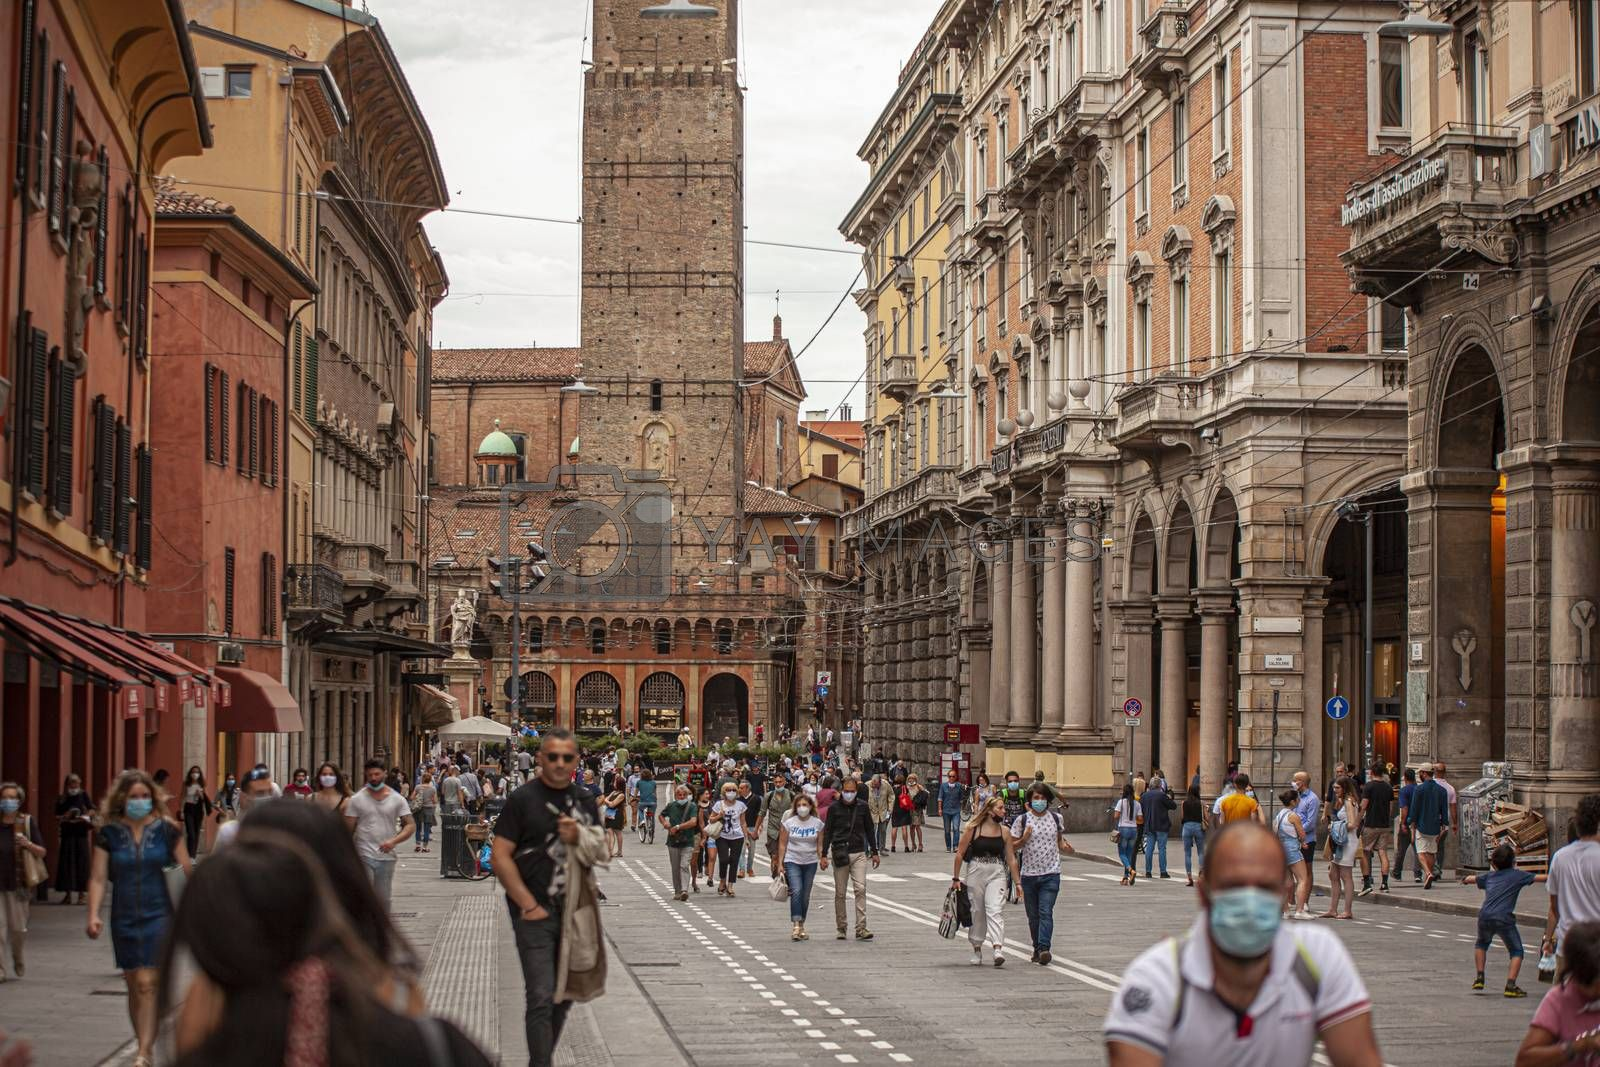 People in Bologna 14 by pippocarlot